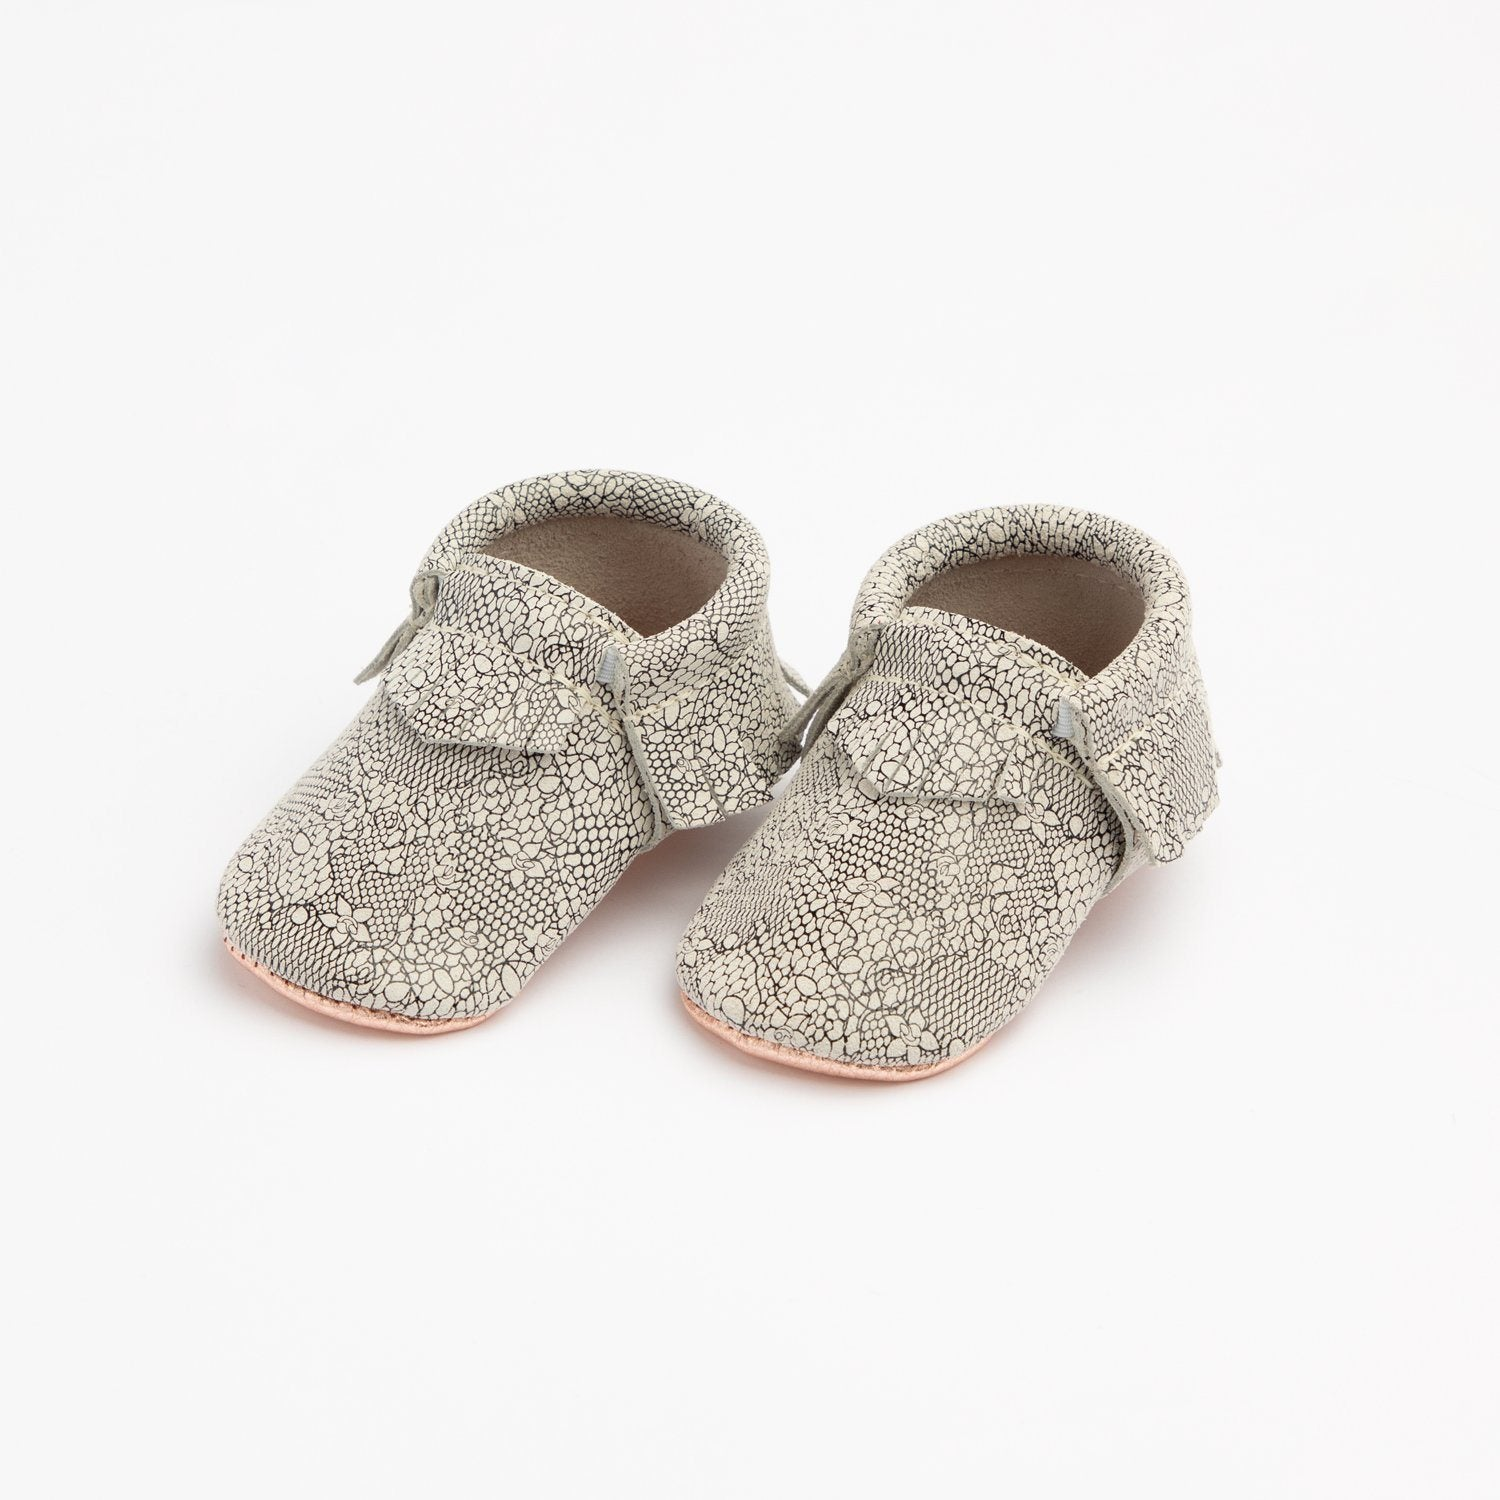 Coppered Lace Moccasins soft sole